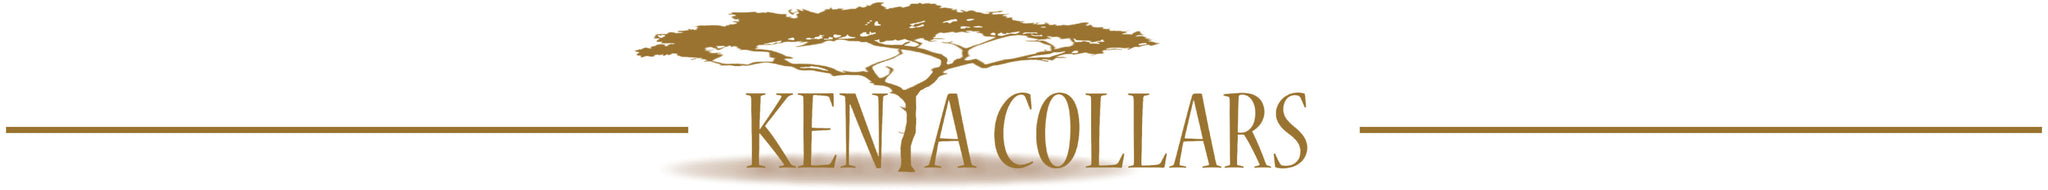 Kenya Collars Logo for Page Header